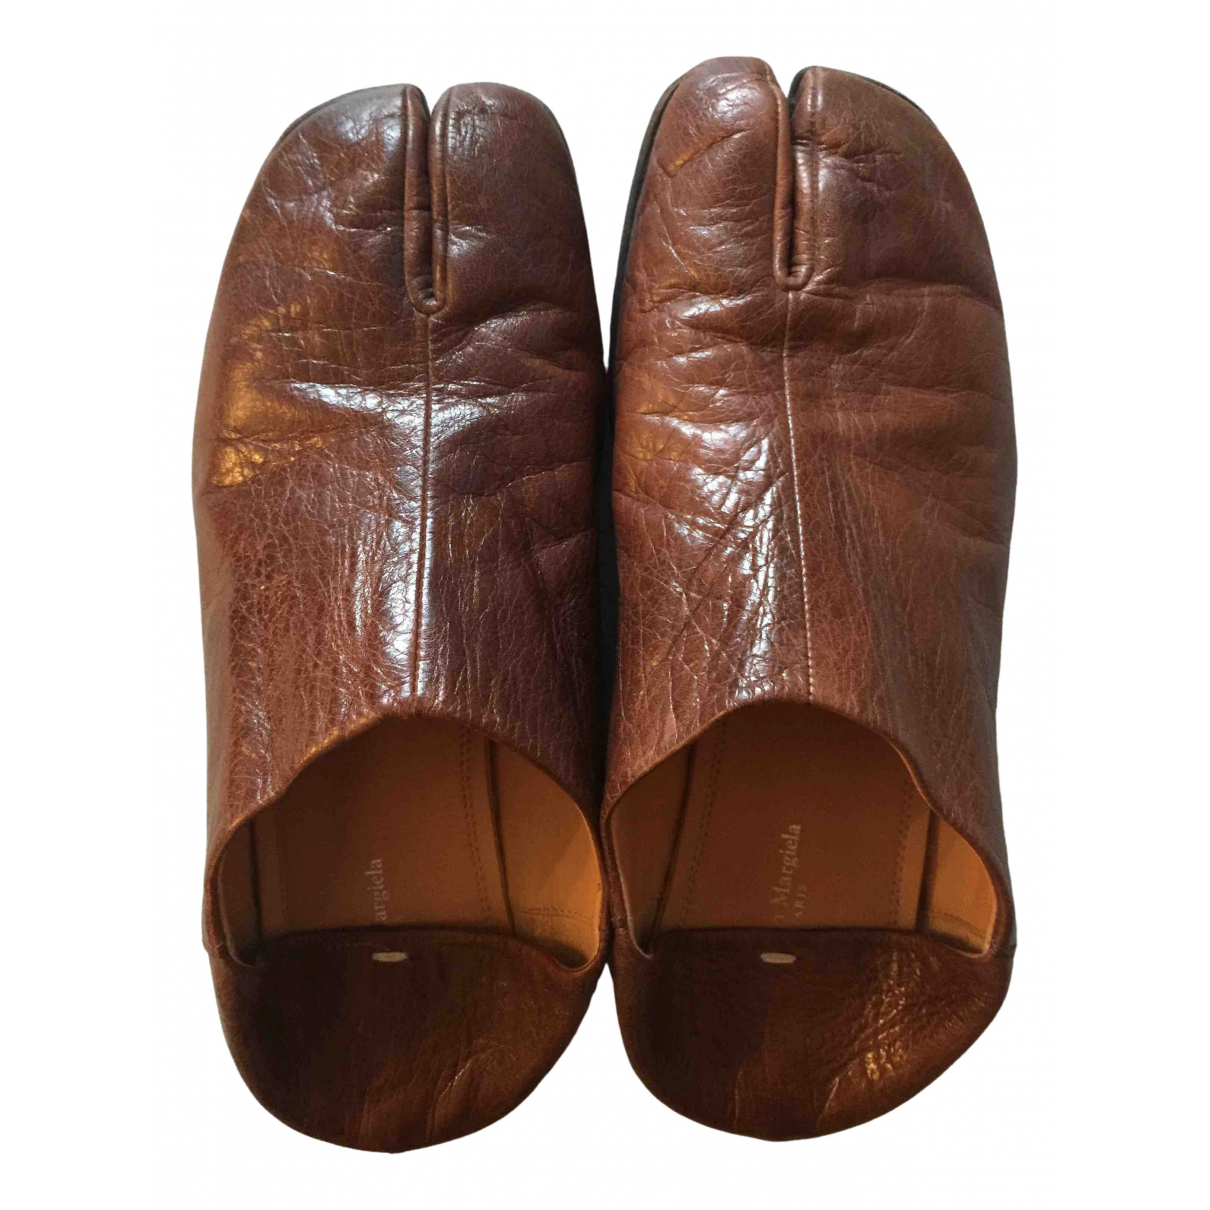 Maison Martin Margiela \N Brown Leather Mules & Clogs for Women 39 EU